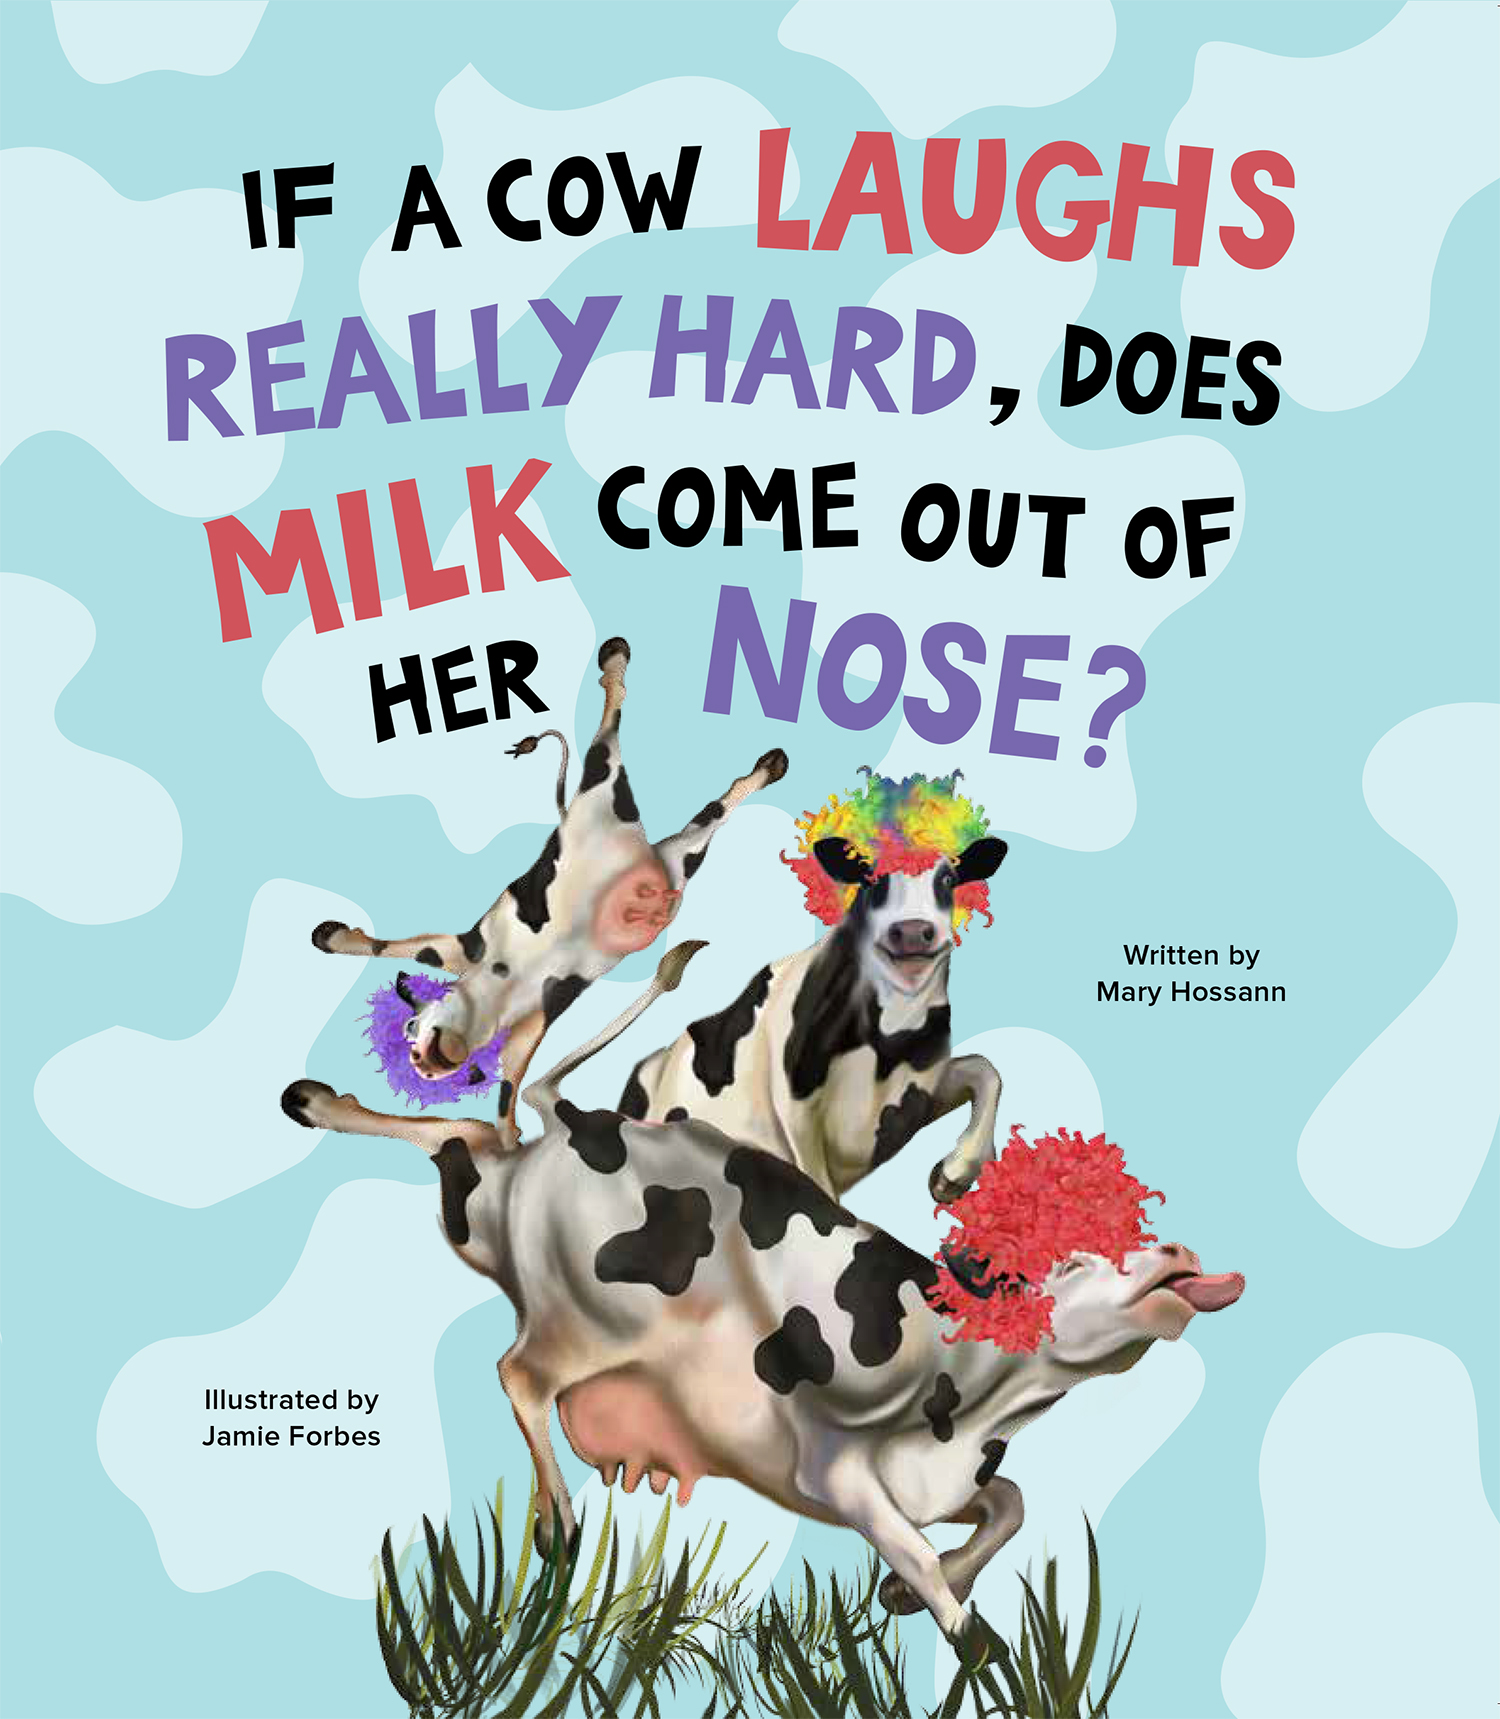 If A Cow Laughs Really Hard Does Milk Come Out Of Her Nose?